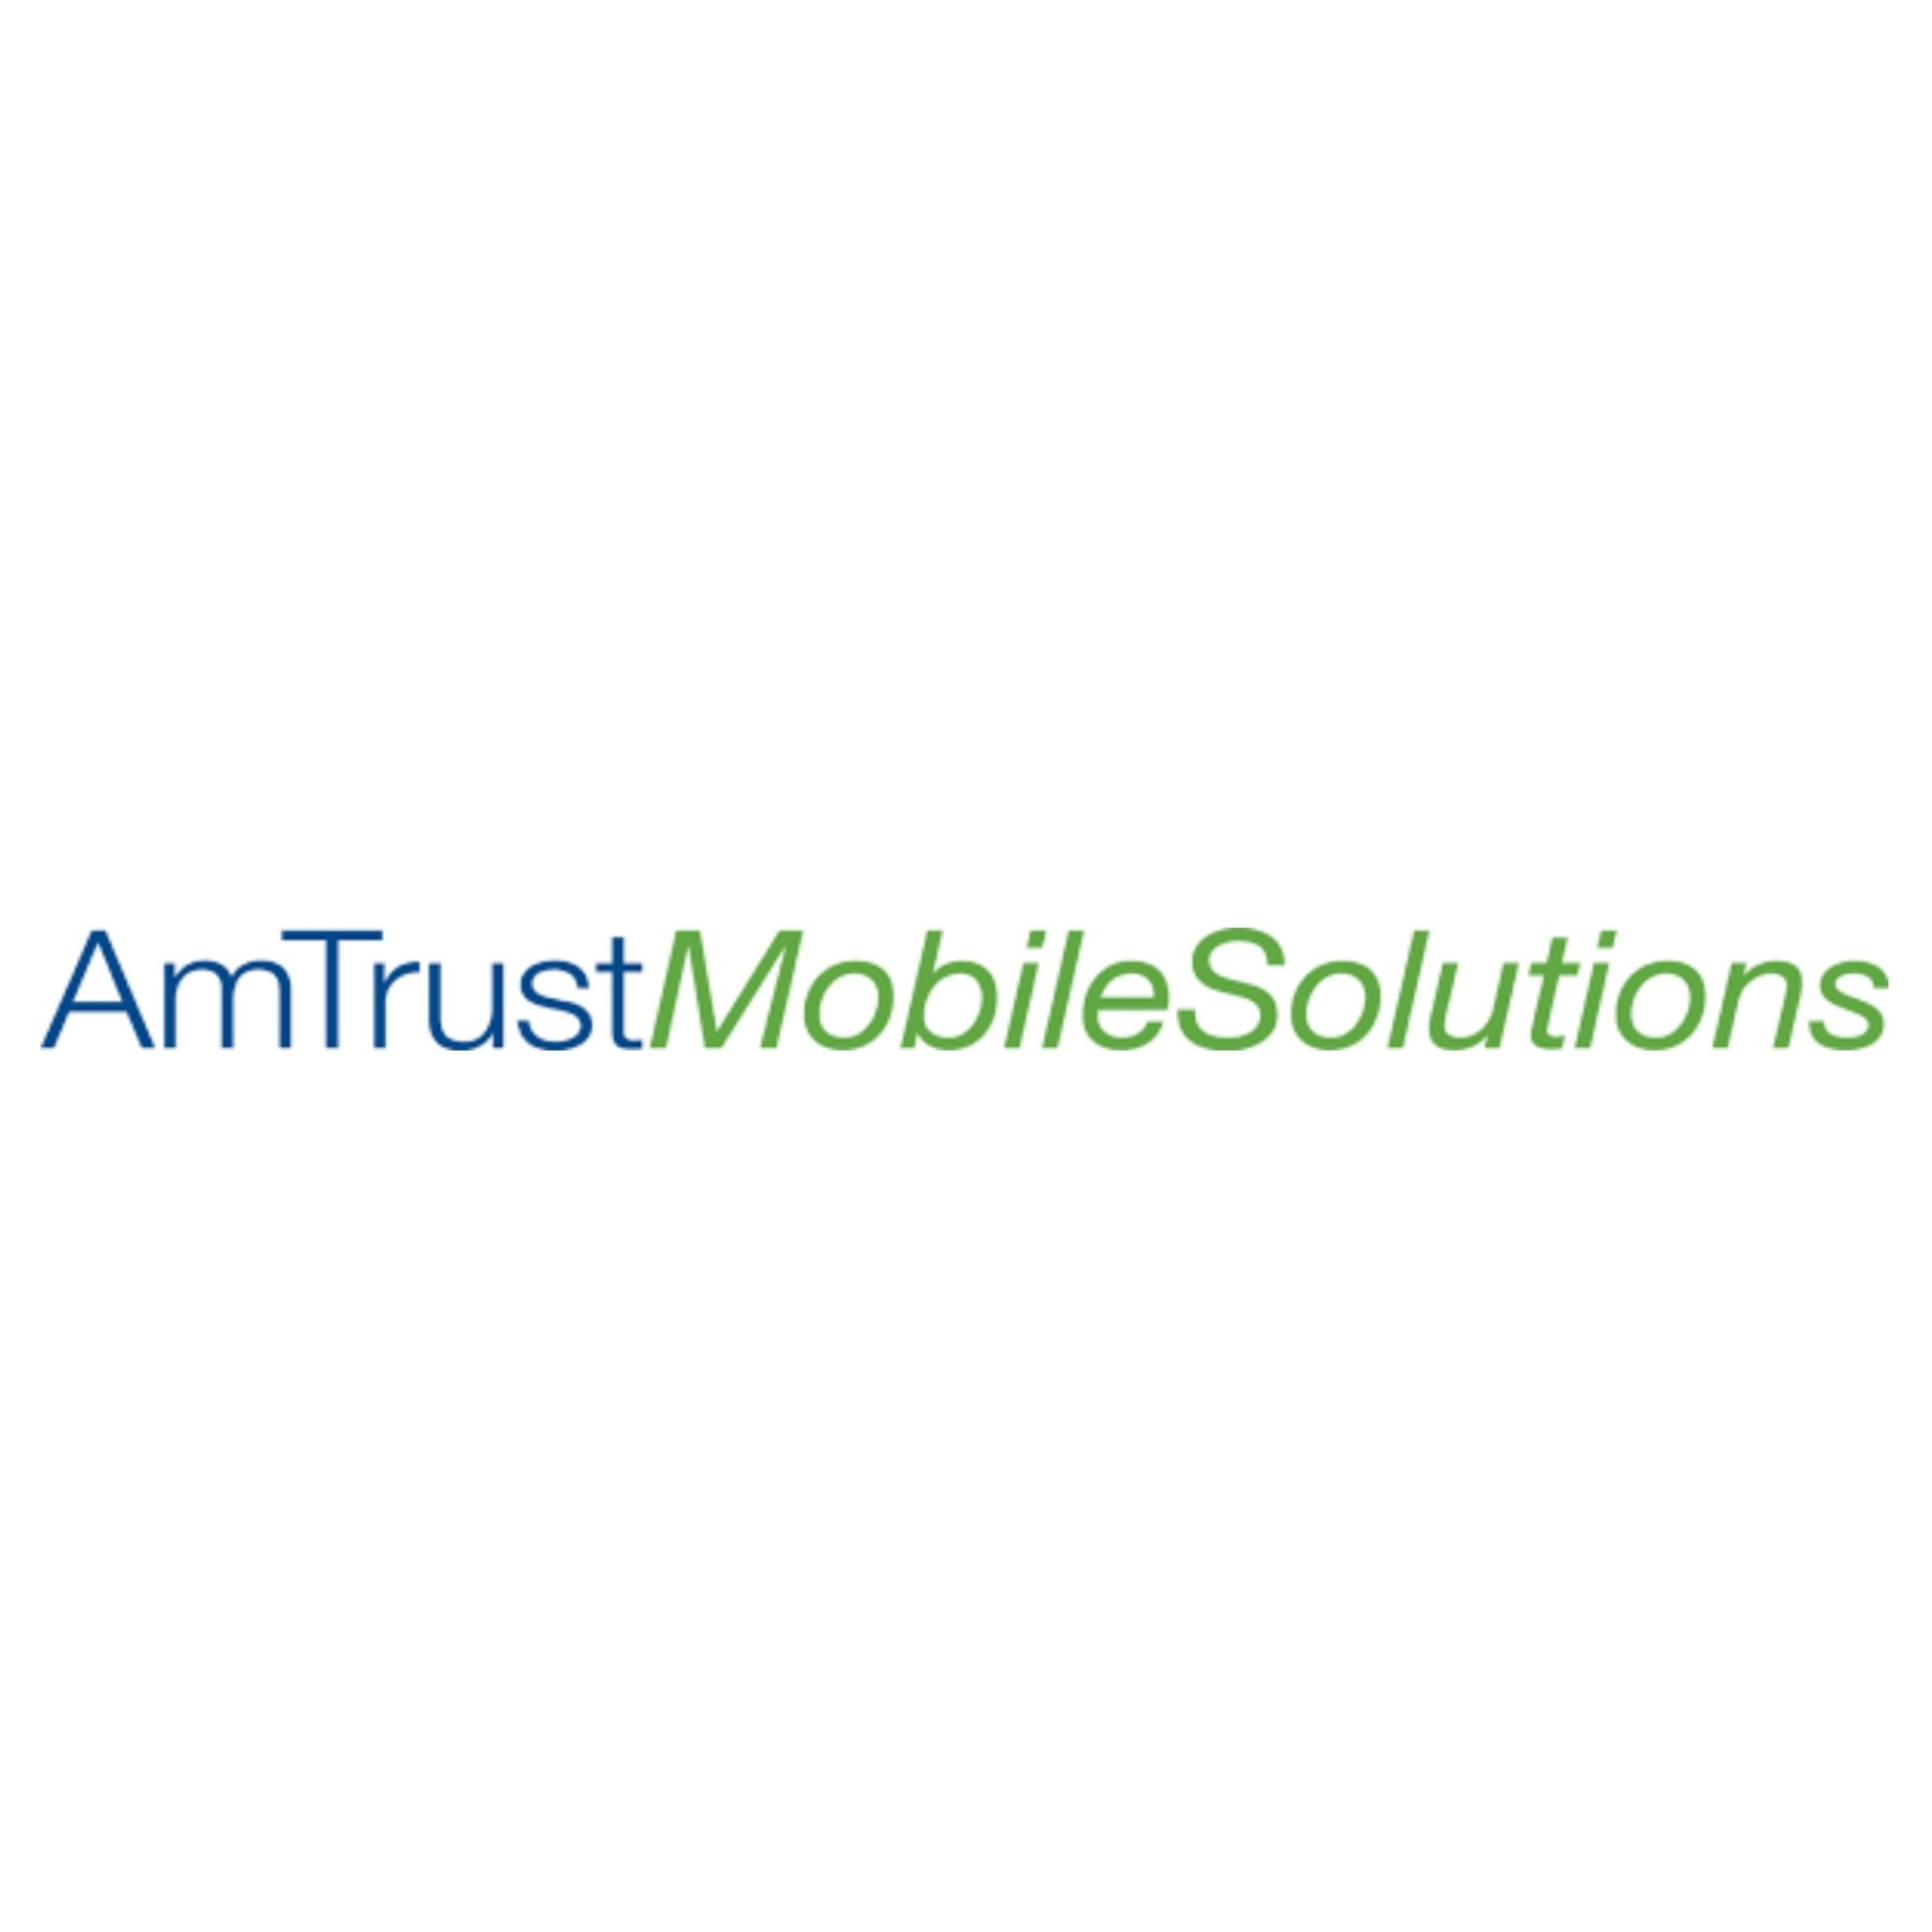 AmTrustMobileSolutions